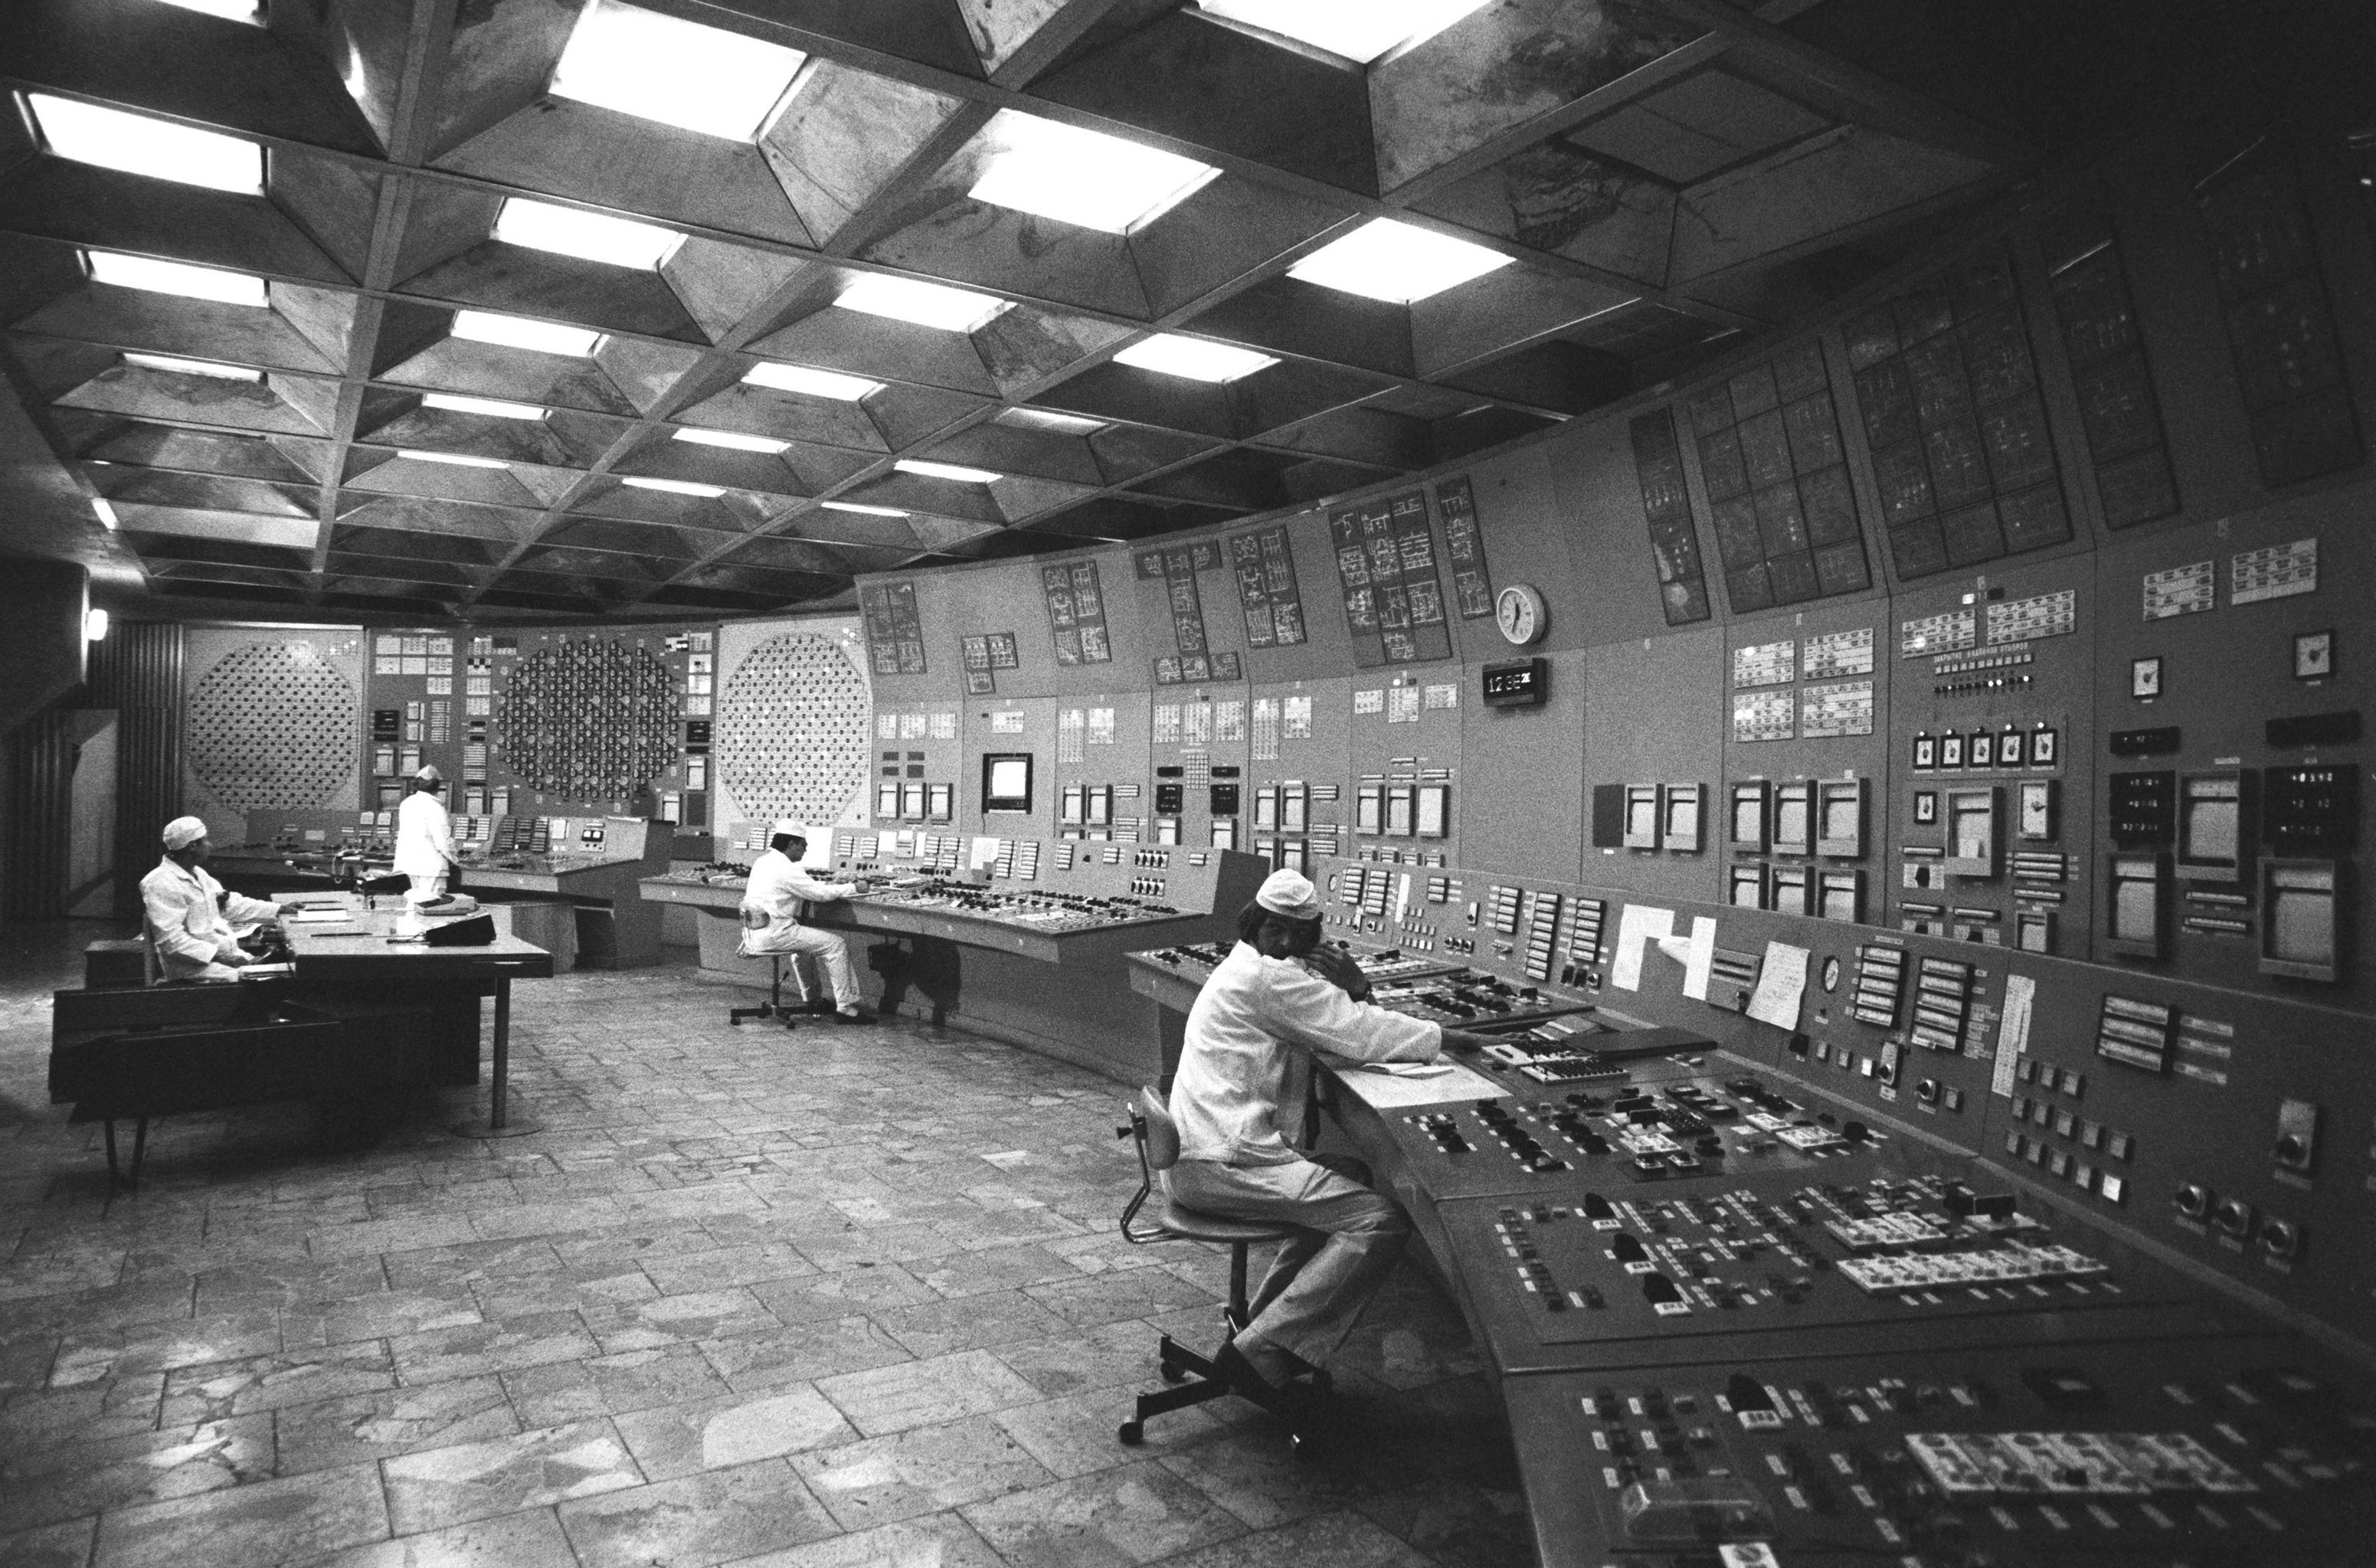 5 Reasons Why the Chernobyl Disaster Got So Out of Control ...